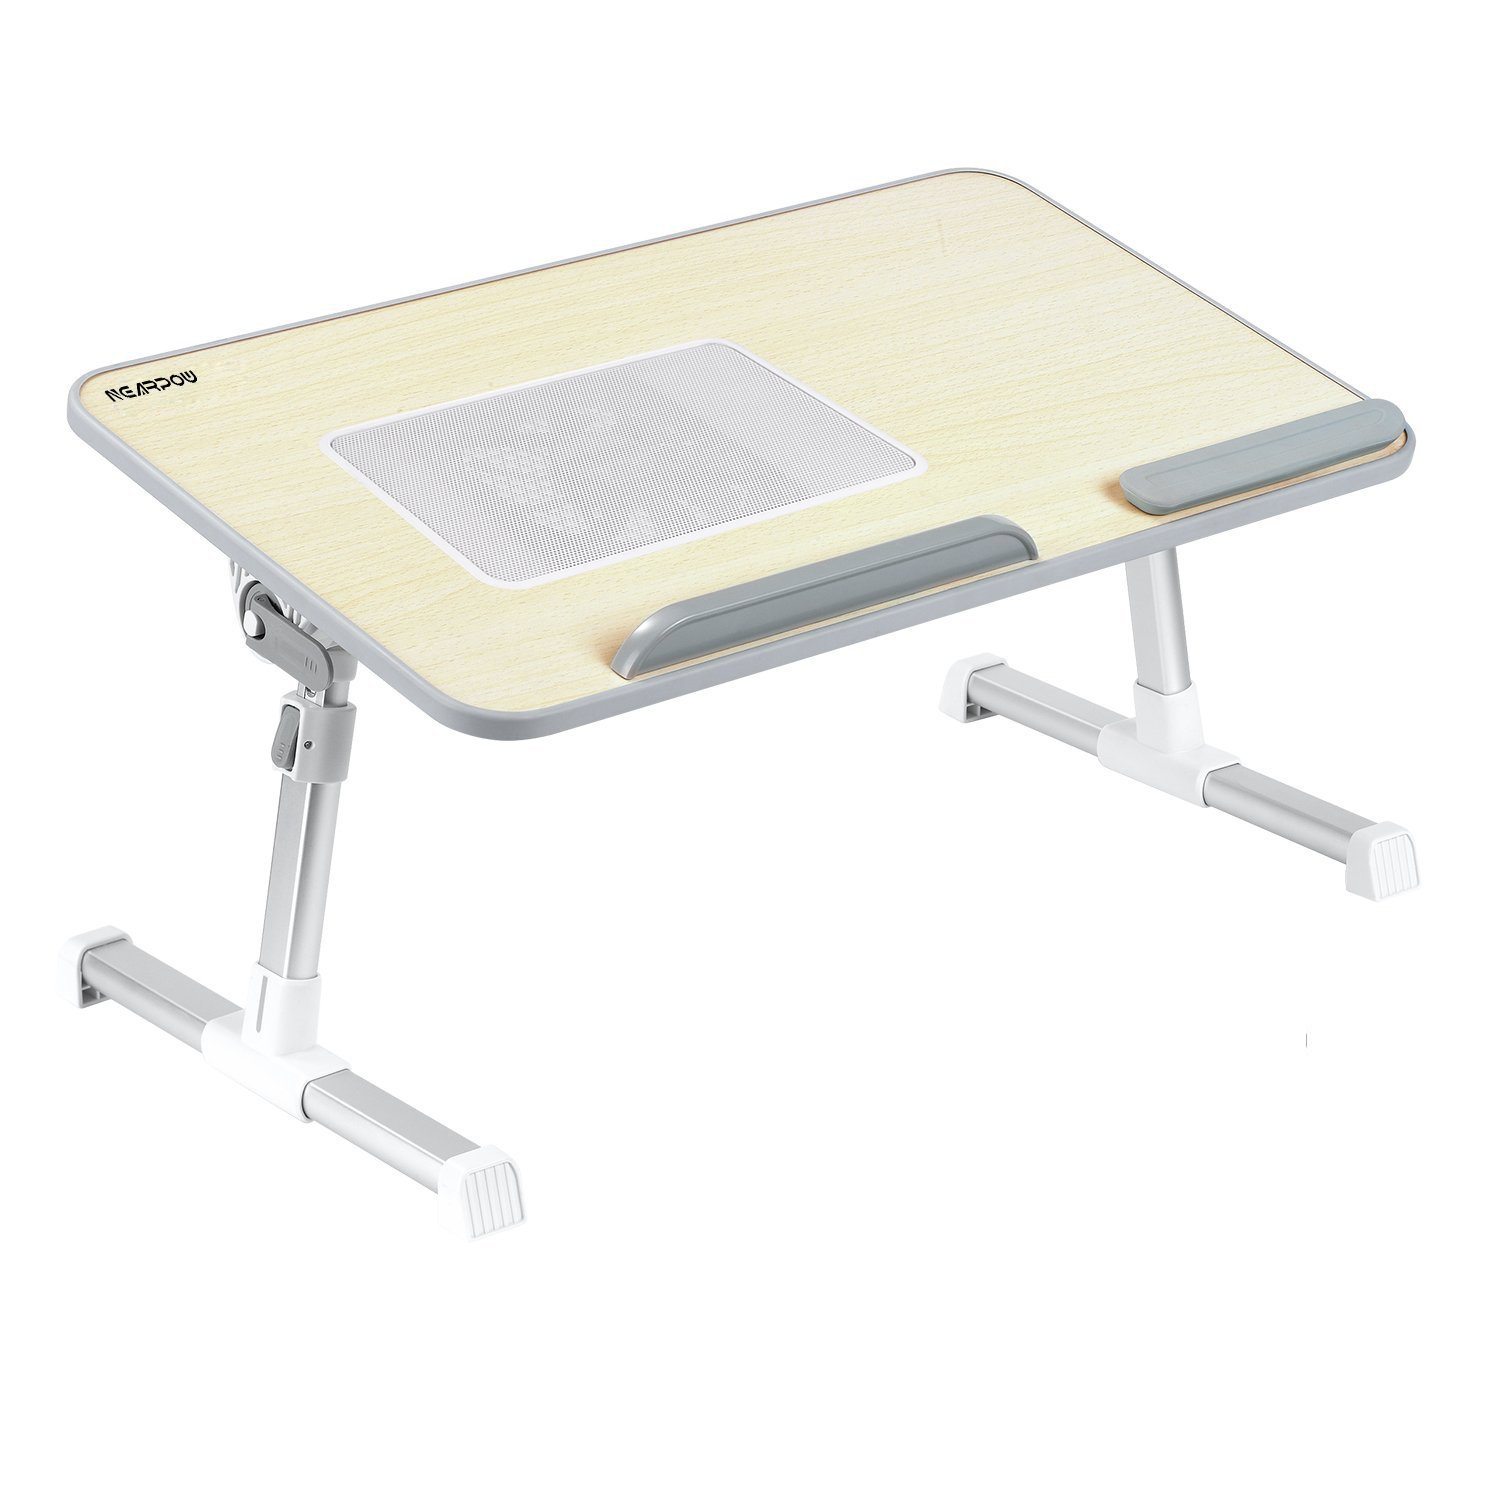 standfolding reading trayadjustable product bed party portable holder tray elegant camping table lap home laptop at ultideco for bedsofaconvenience folding adjustable using desk lapdesk stand